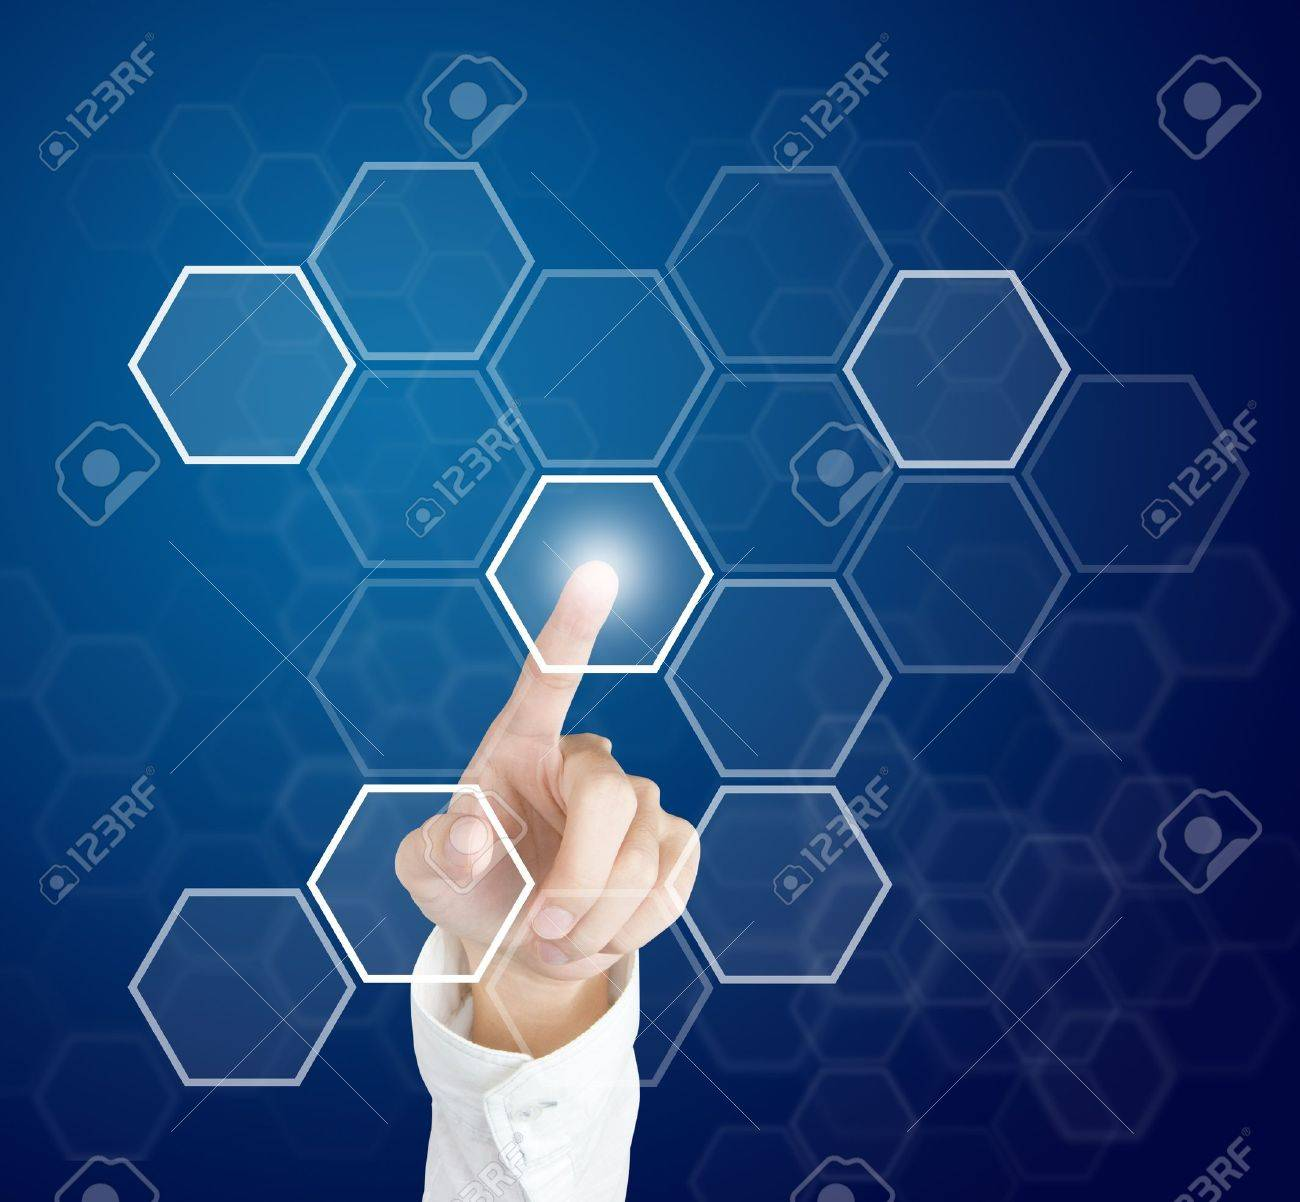 hand pushing touch screen button Stock Photo - 13225216